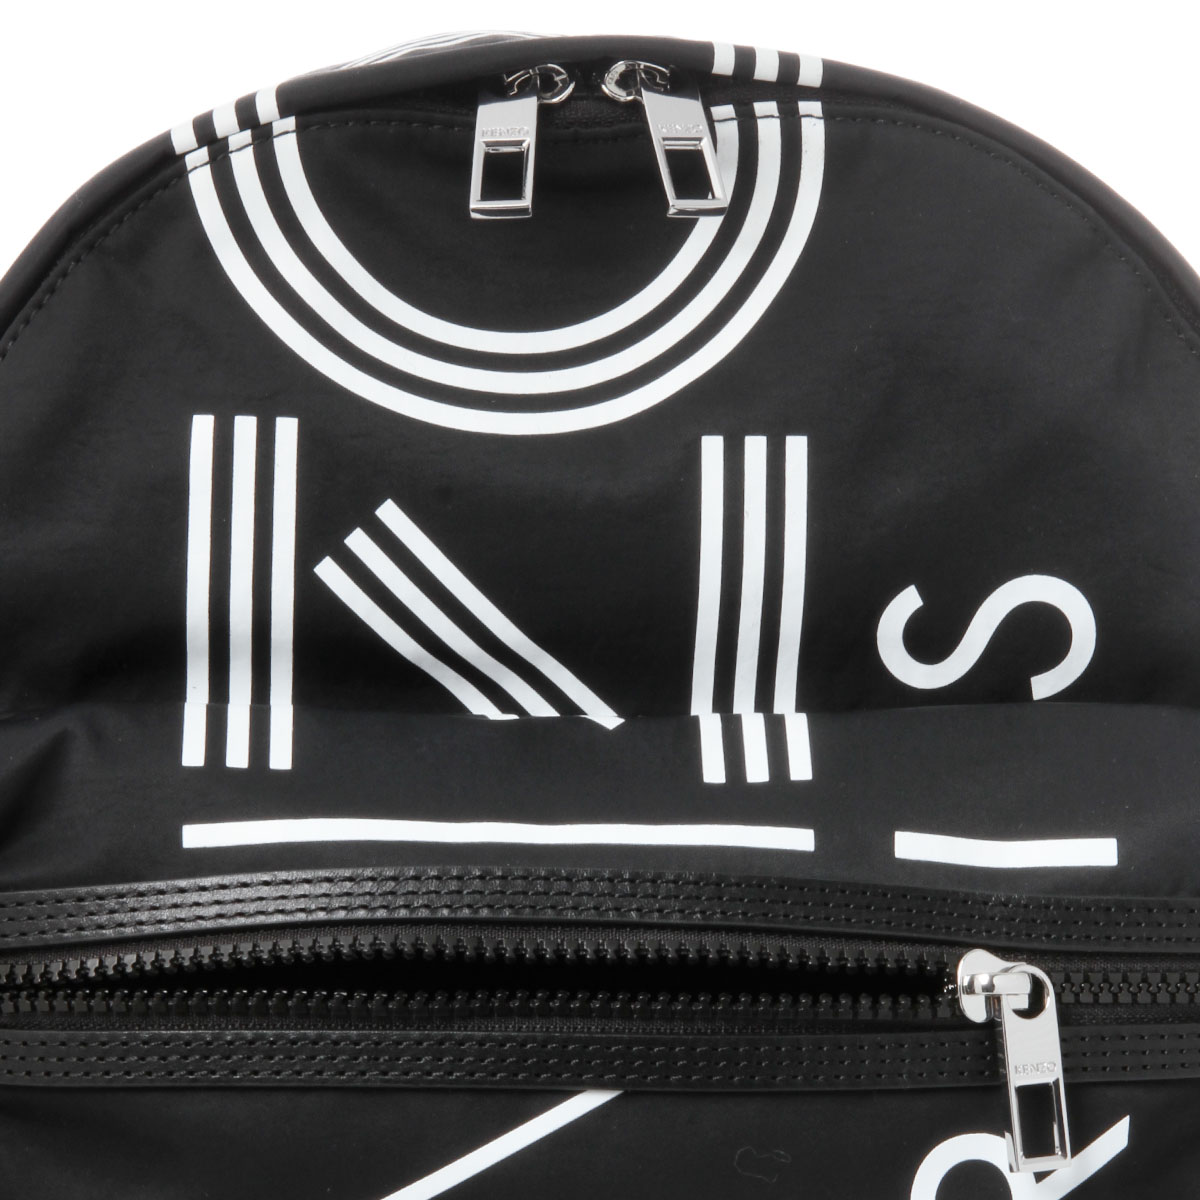 ad8df01c66a importshopdouble: Kenzo KENZO bag lady 5SF213F24 99 backpack large ...